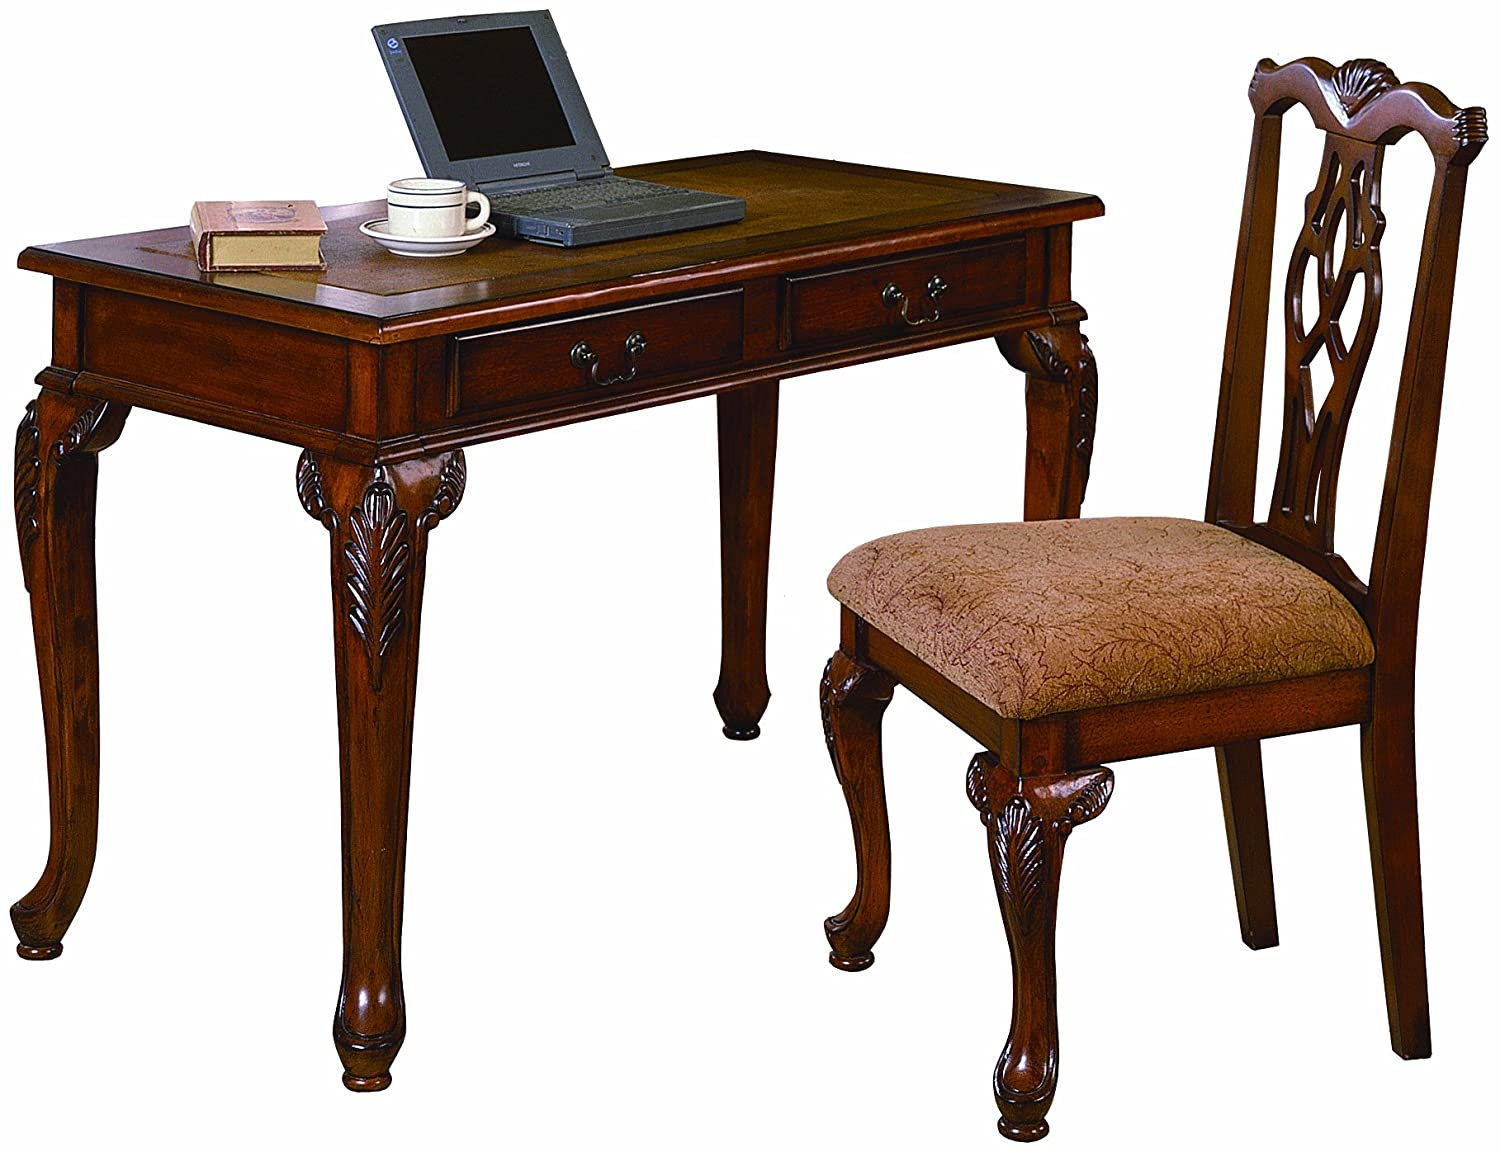 wood home office desks. Amazon.com: Crown Mark Fairfax Home Office Desk/Chair Set: Kitchen \u0026 Dining Wood Desks E